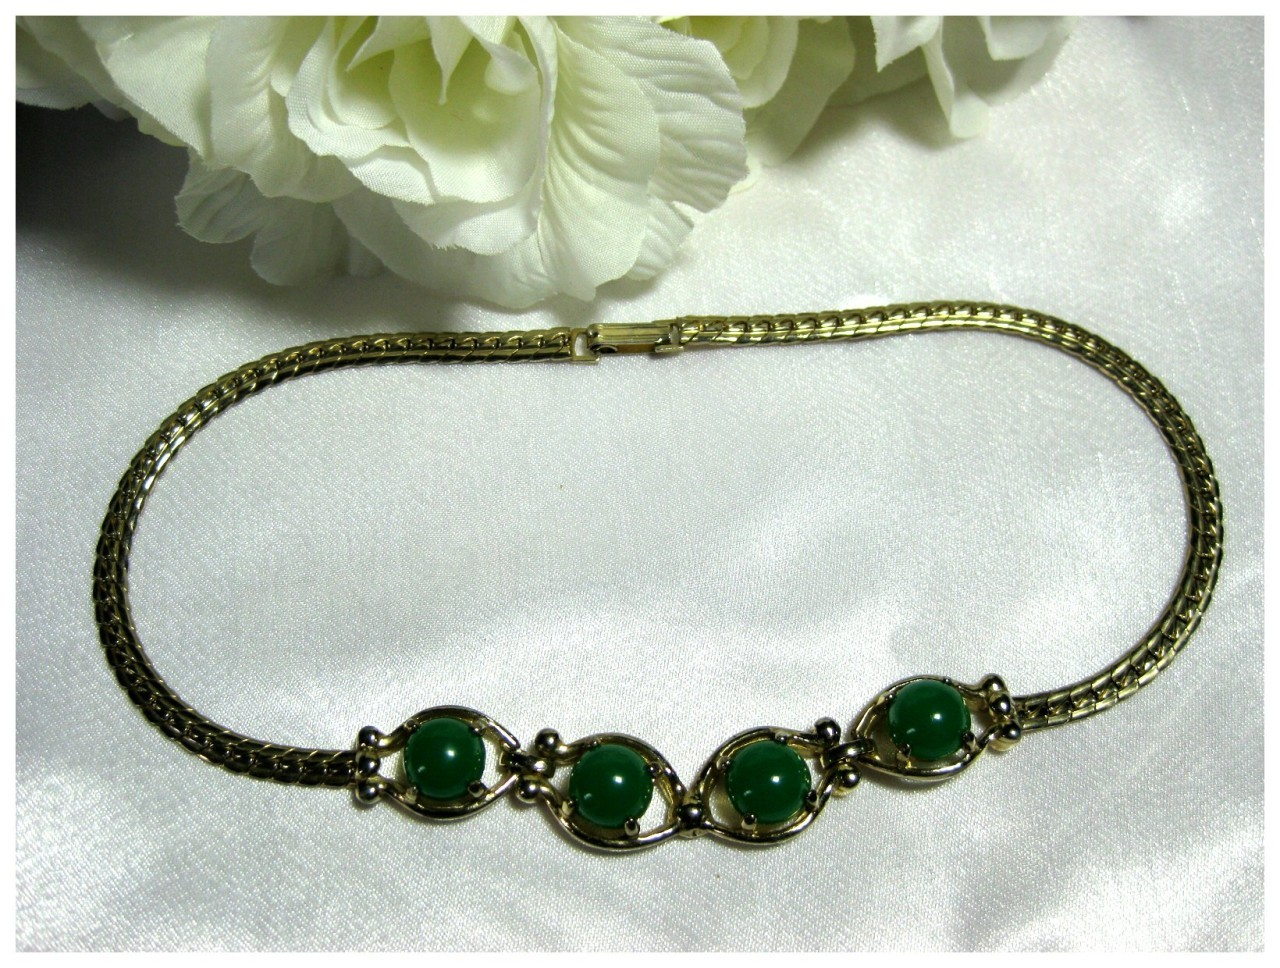 Vintage Gold Tone Choker Necklace w/Green Thermoset Cabochon